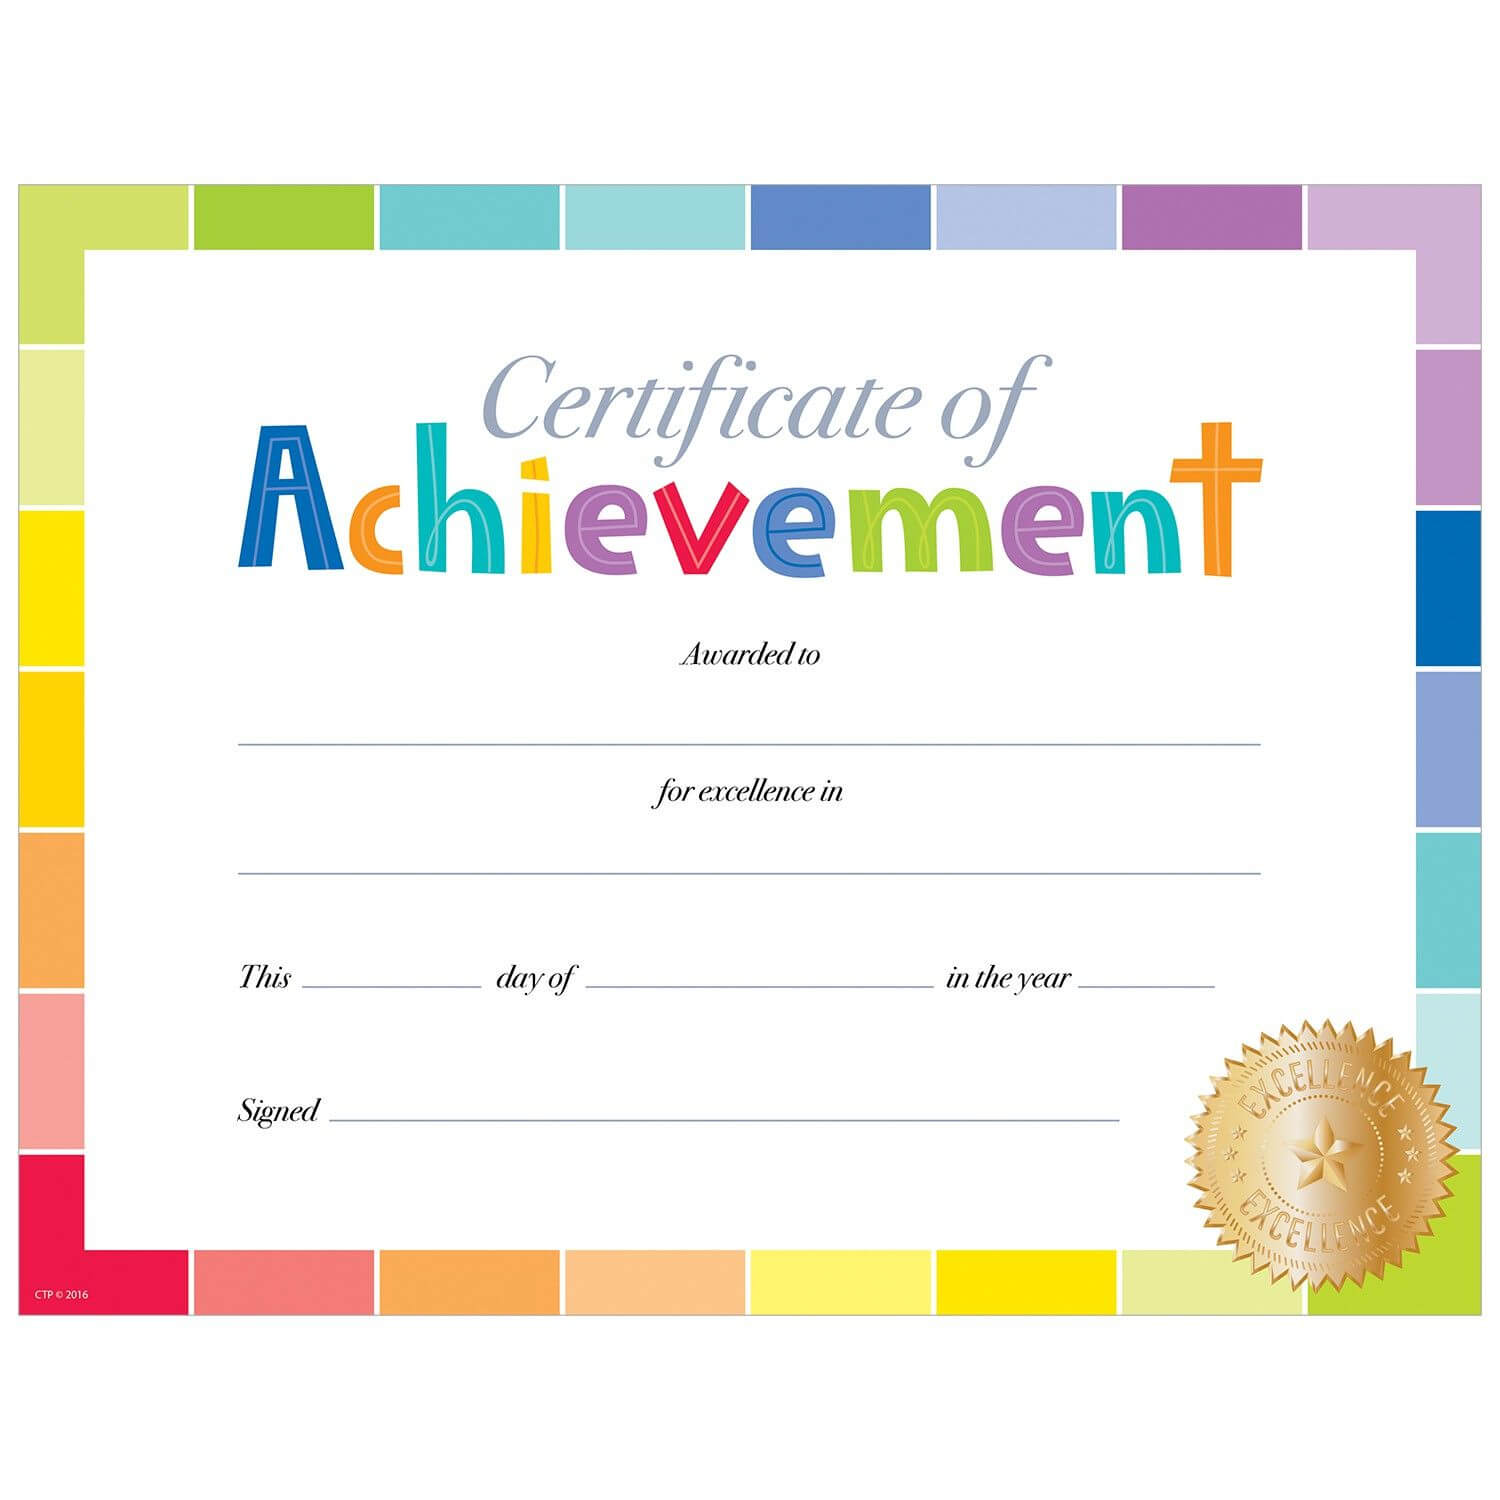 Award Certificates Kids Art - Google Search | Scmac With Regard To Free Printable Certificate Templates For Kids